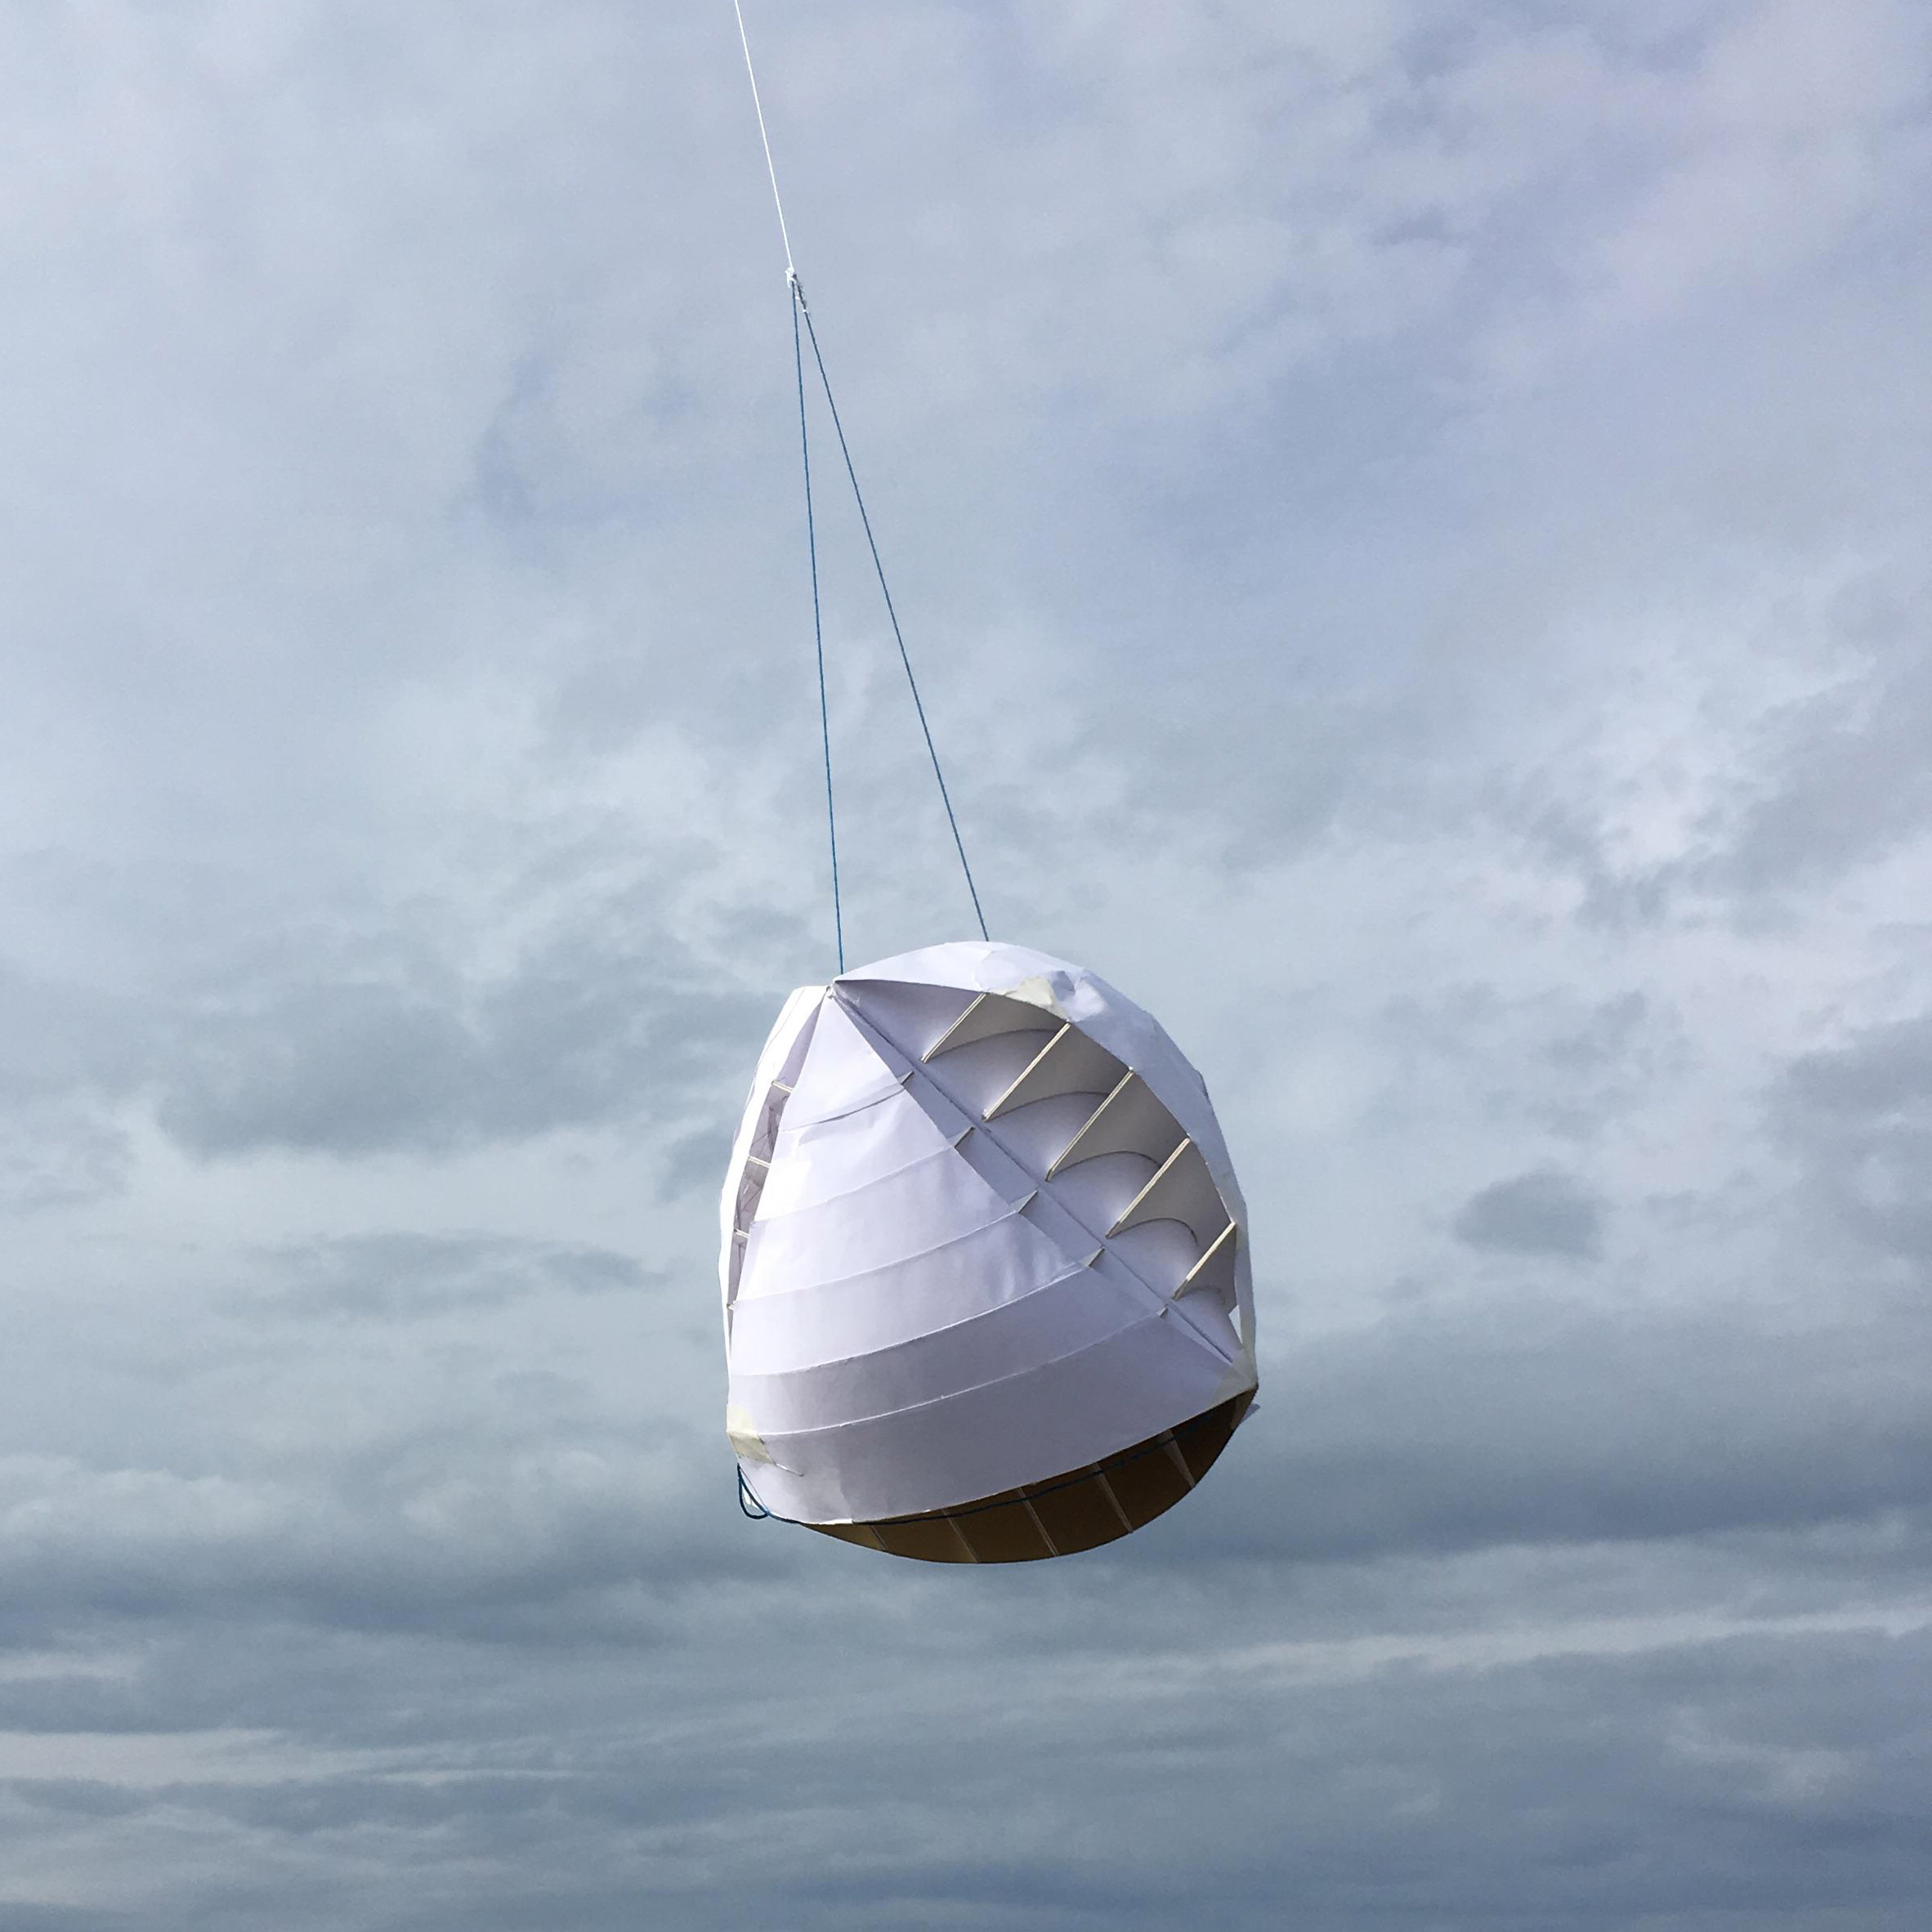 O-Wind Turbine captures energy even in the middle of dense